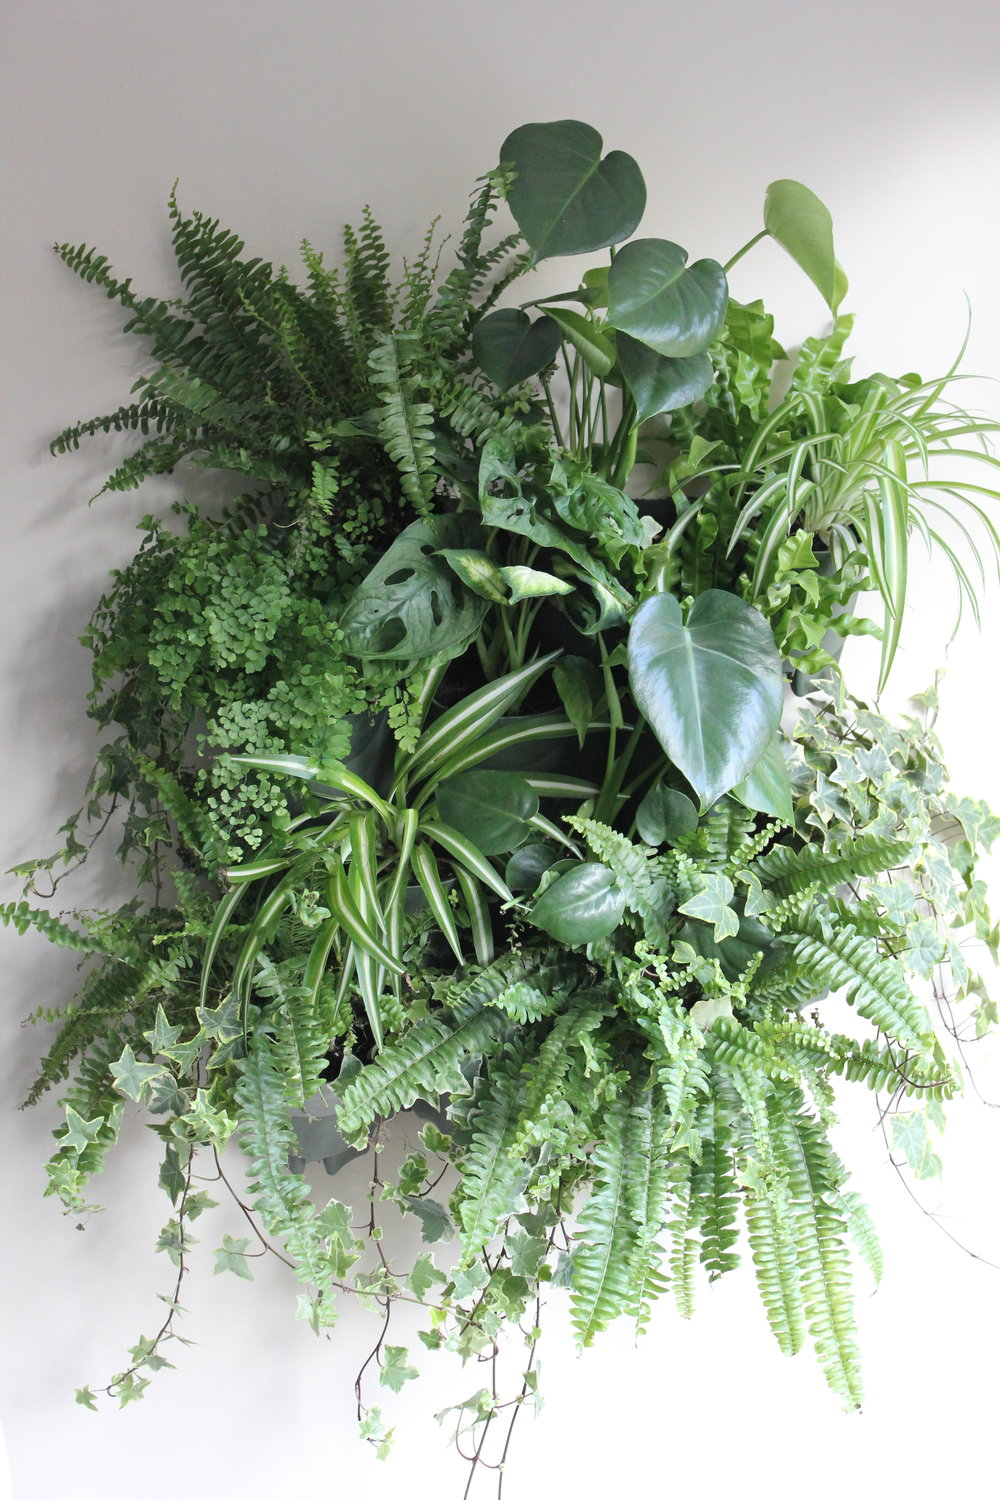 Dobbies Living Wall Kit.  Various House Plants